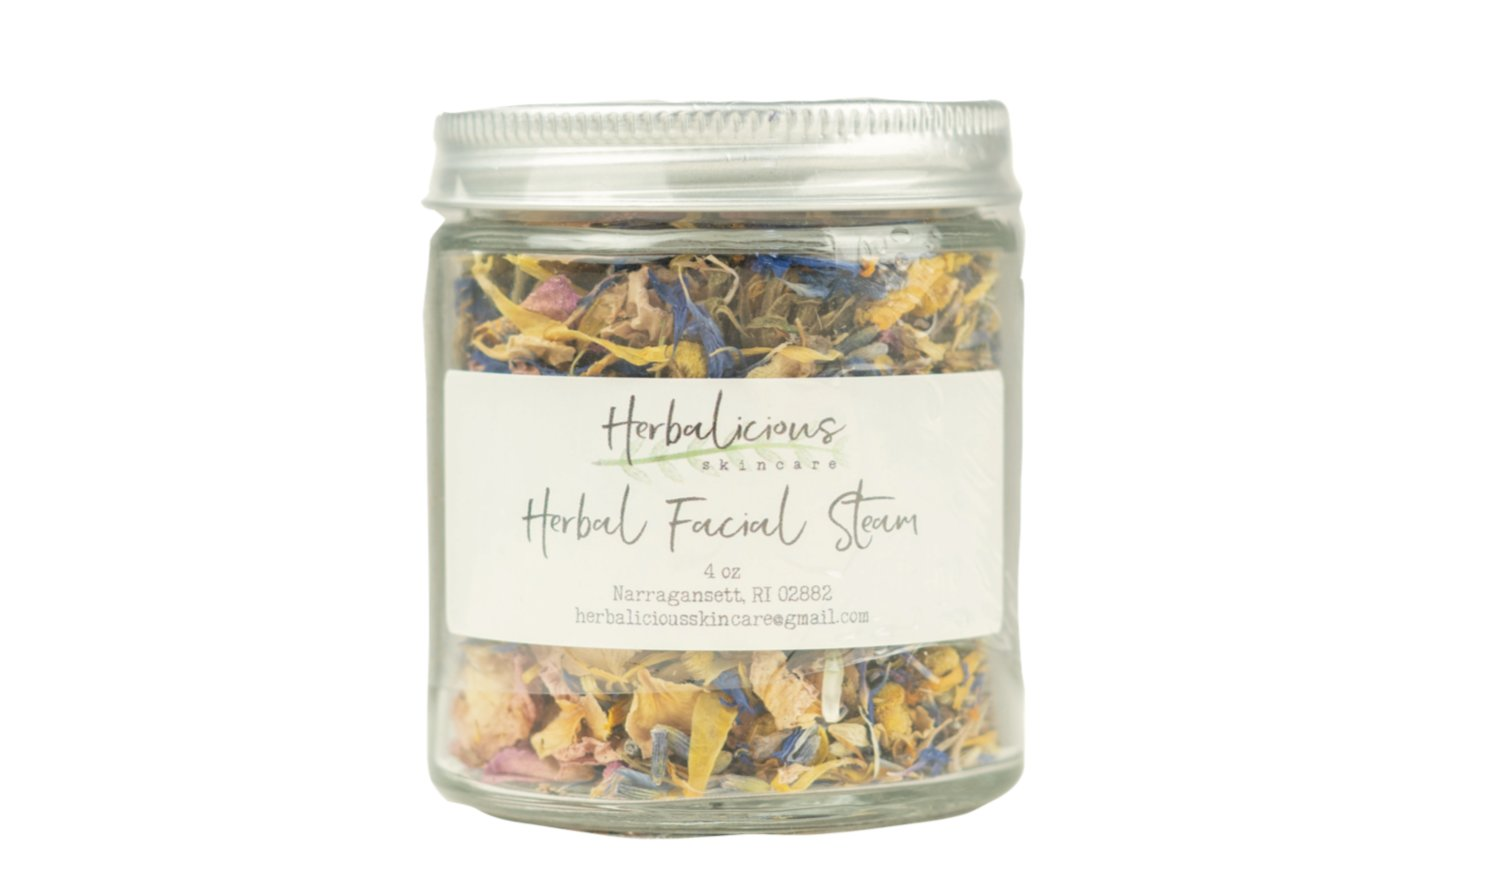 Herbal Facial Steam, $12